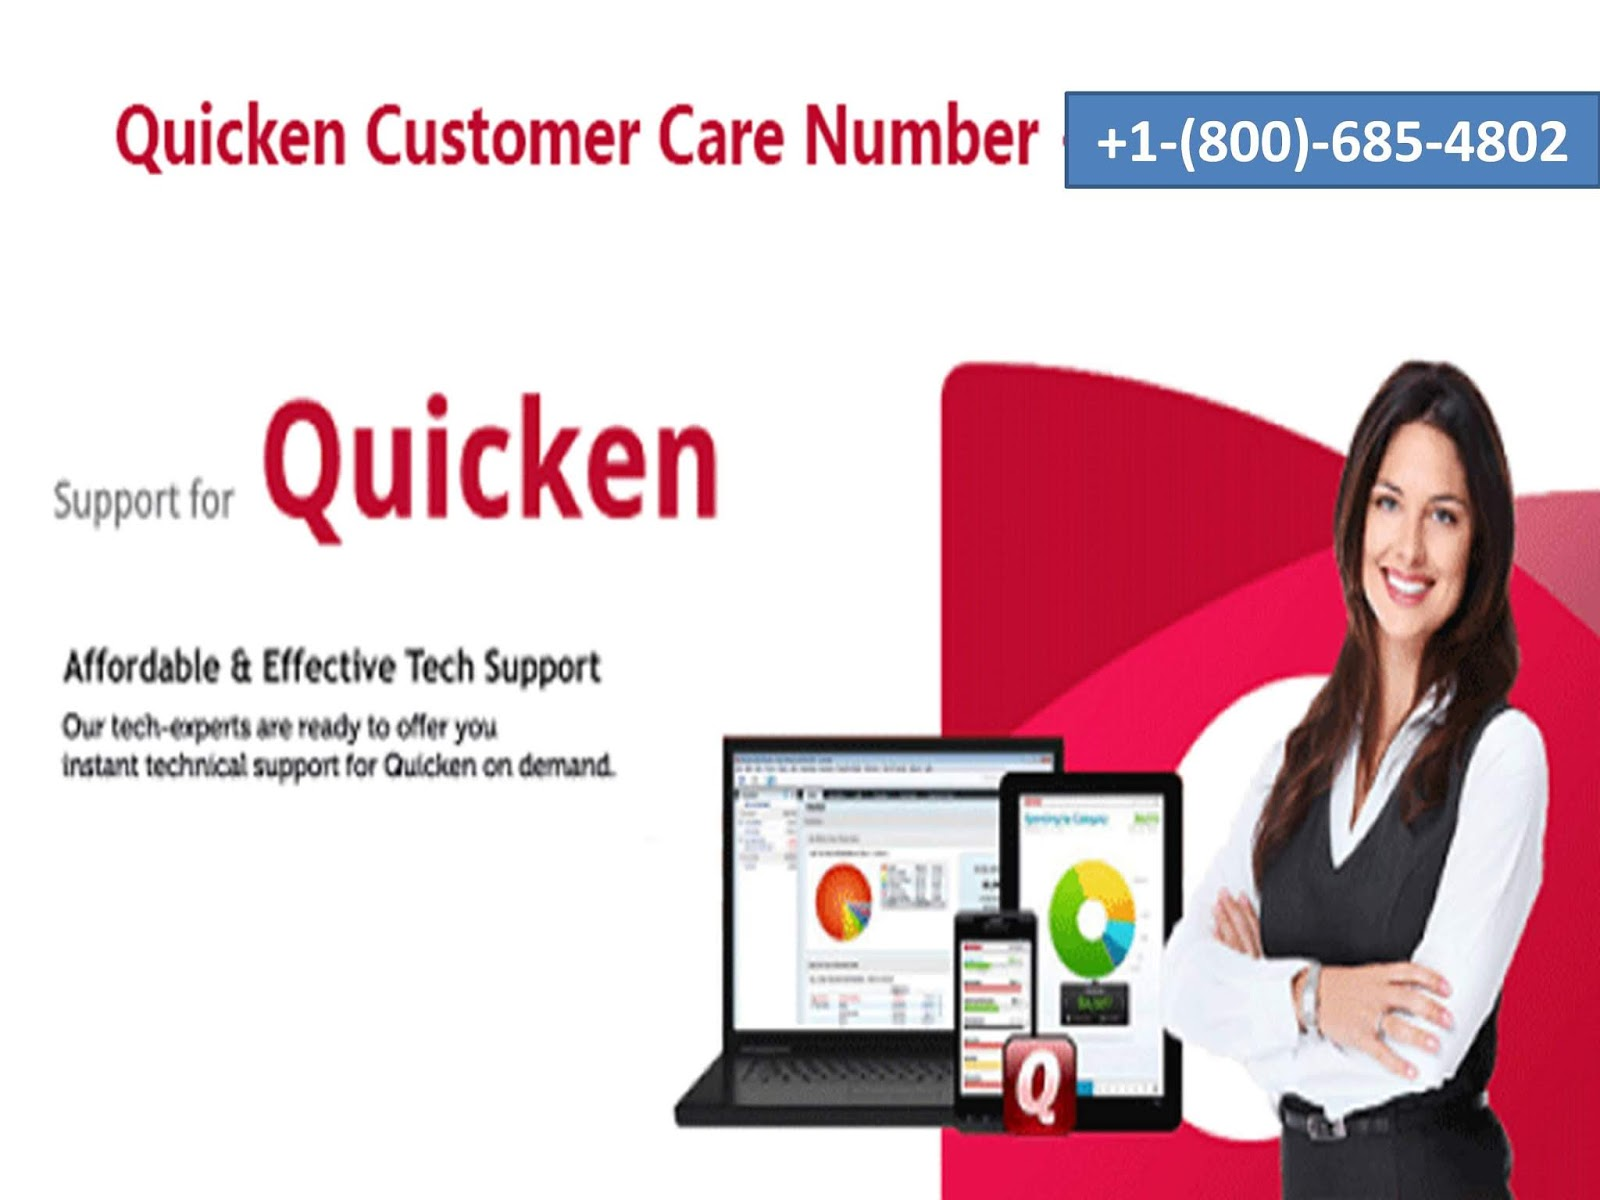 quicken customer service phone number | call+1-(800)-685-4802